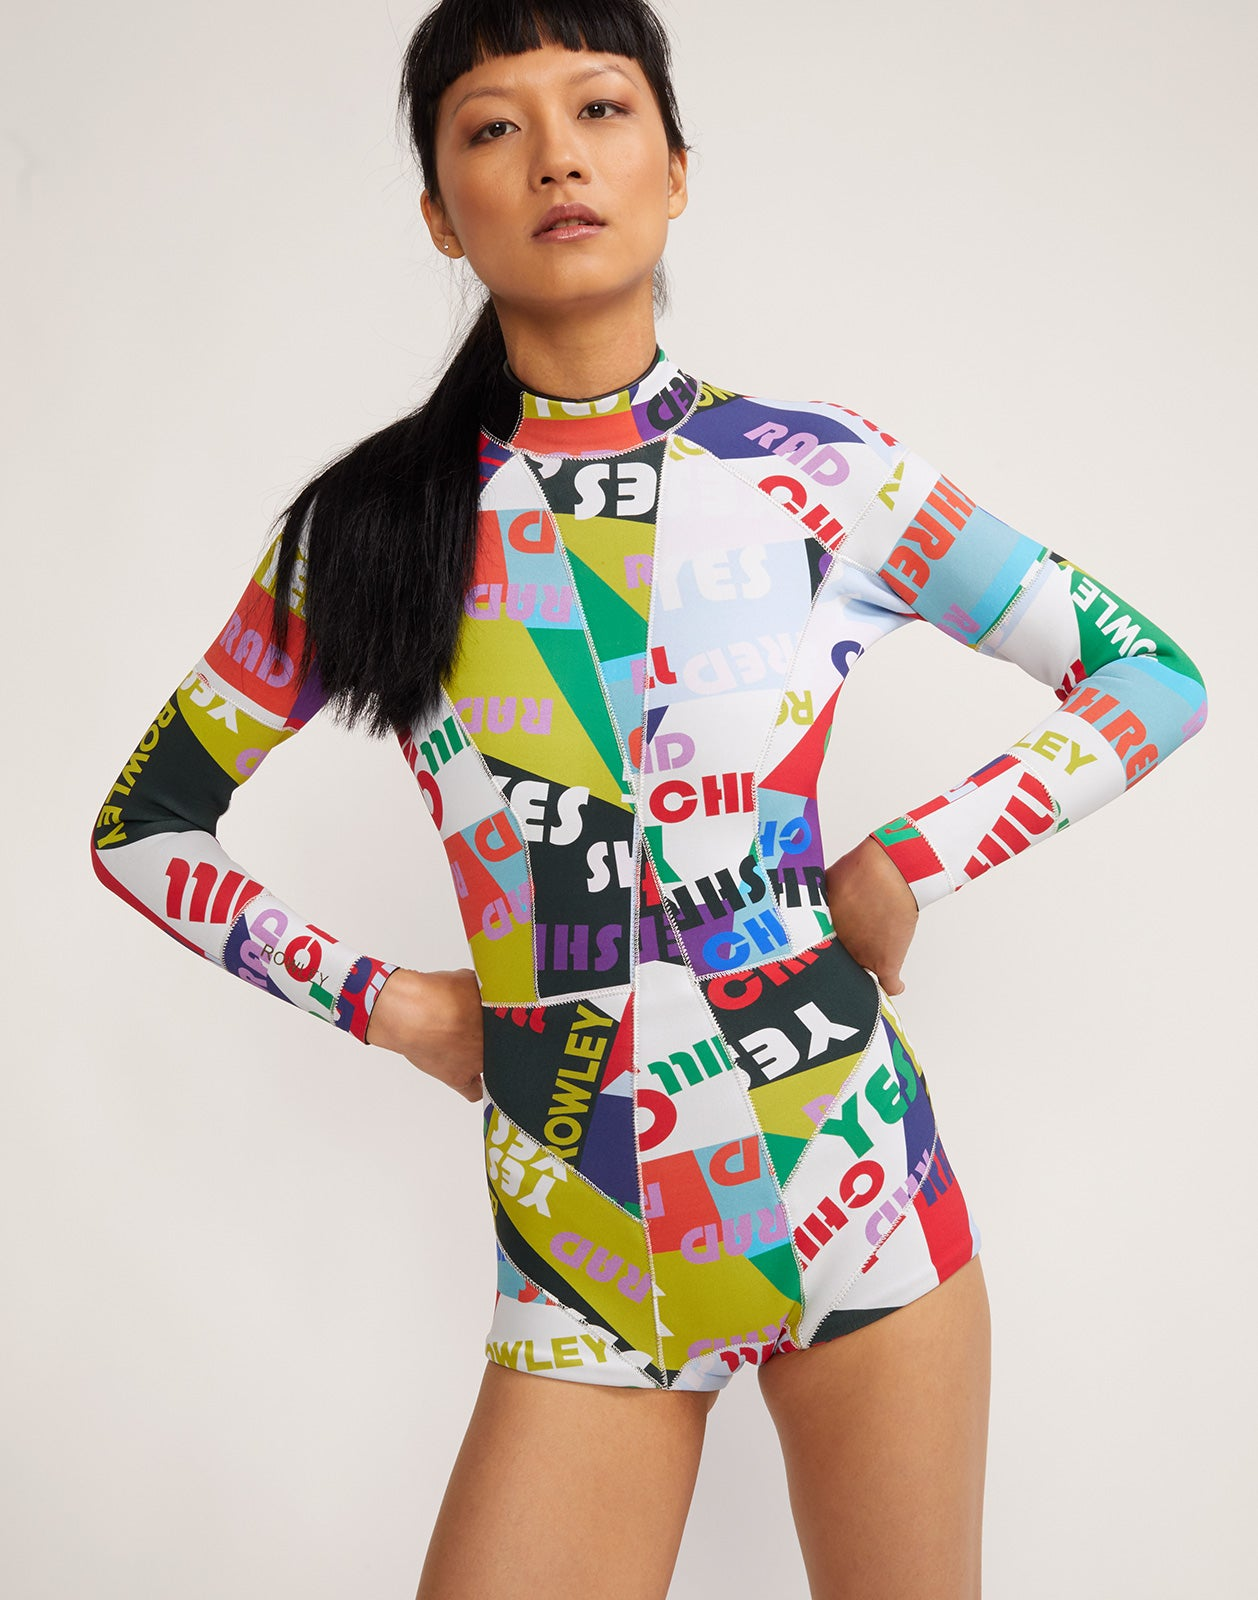 Close front view of Good Vibes wetsuit in colorful graphic print.